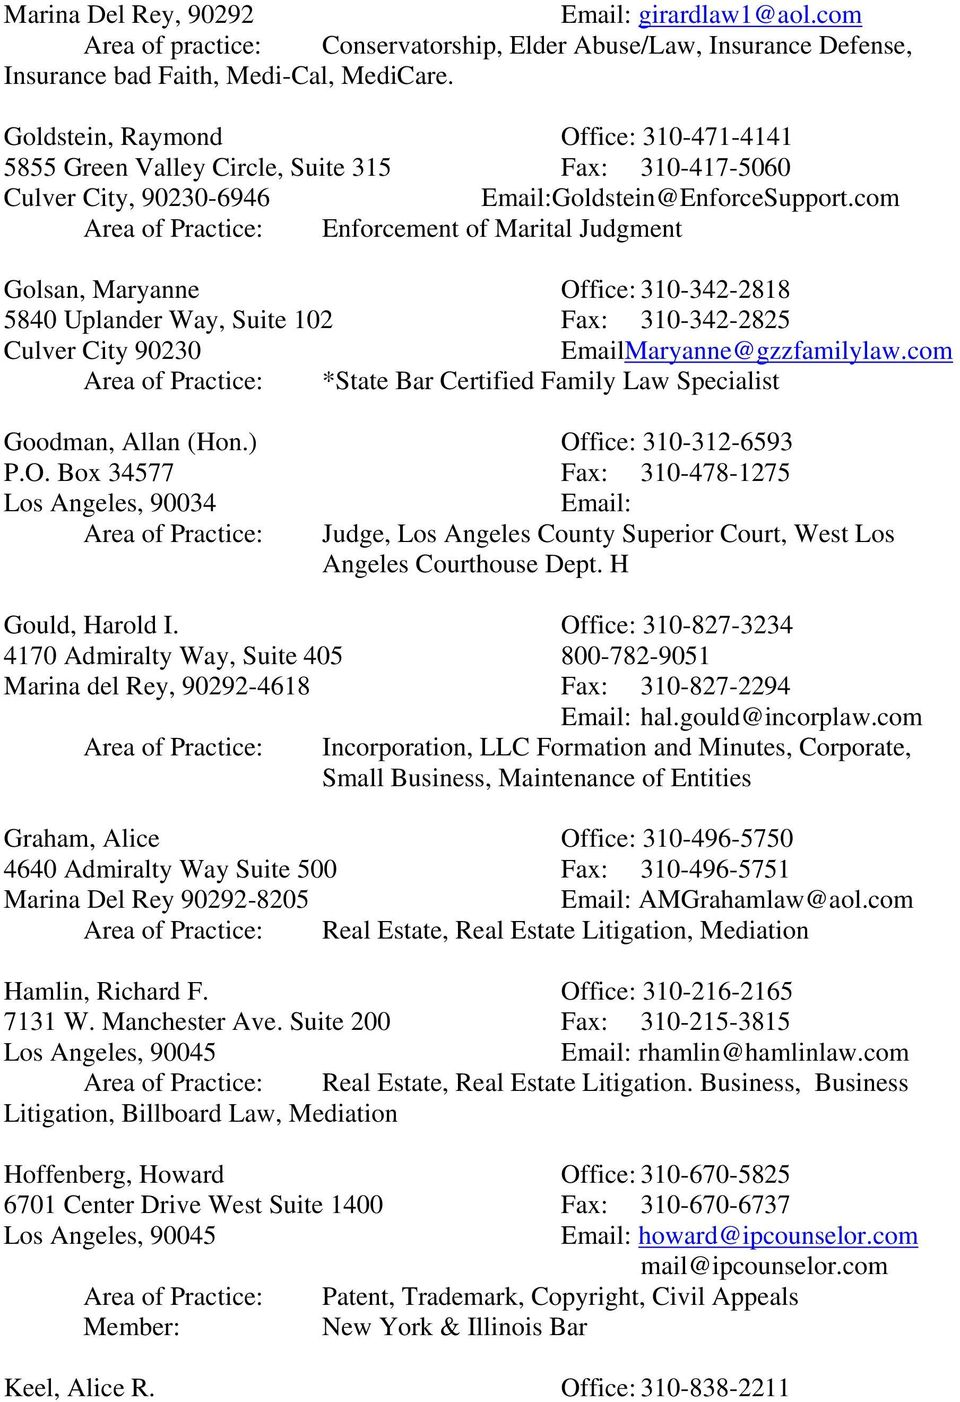 com Area of Practice: Enforcement of Marital Judgment Golsan, Maryanne Office: 310-342-2818 5840 Uplander Way, Suite 102 Fax: 310-342-2825 Culver City 90230 EmailMaryanne@gzzfamilylaw.